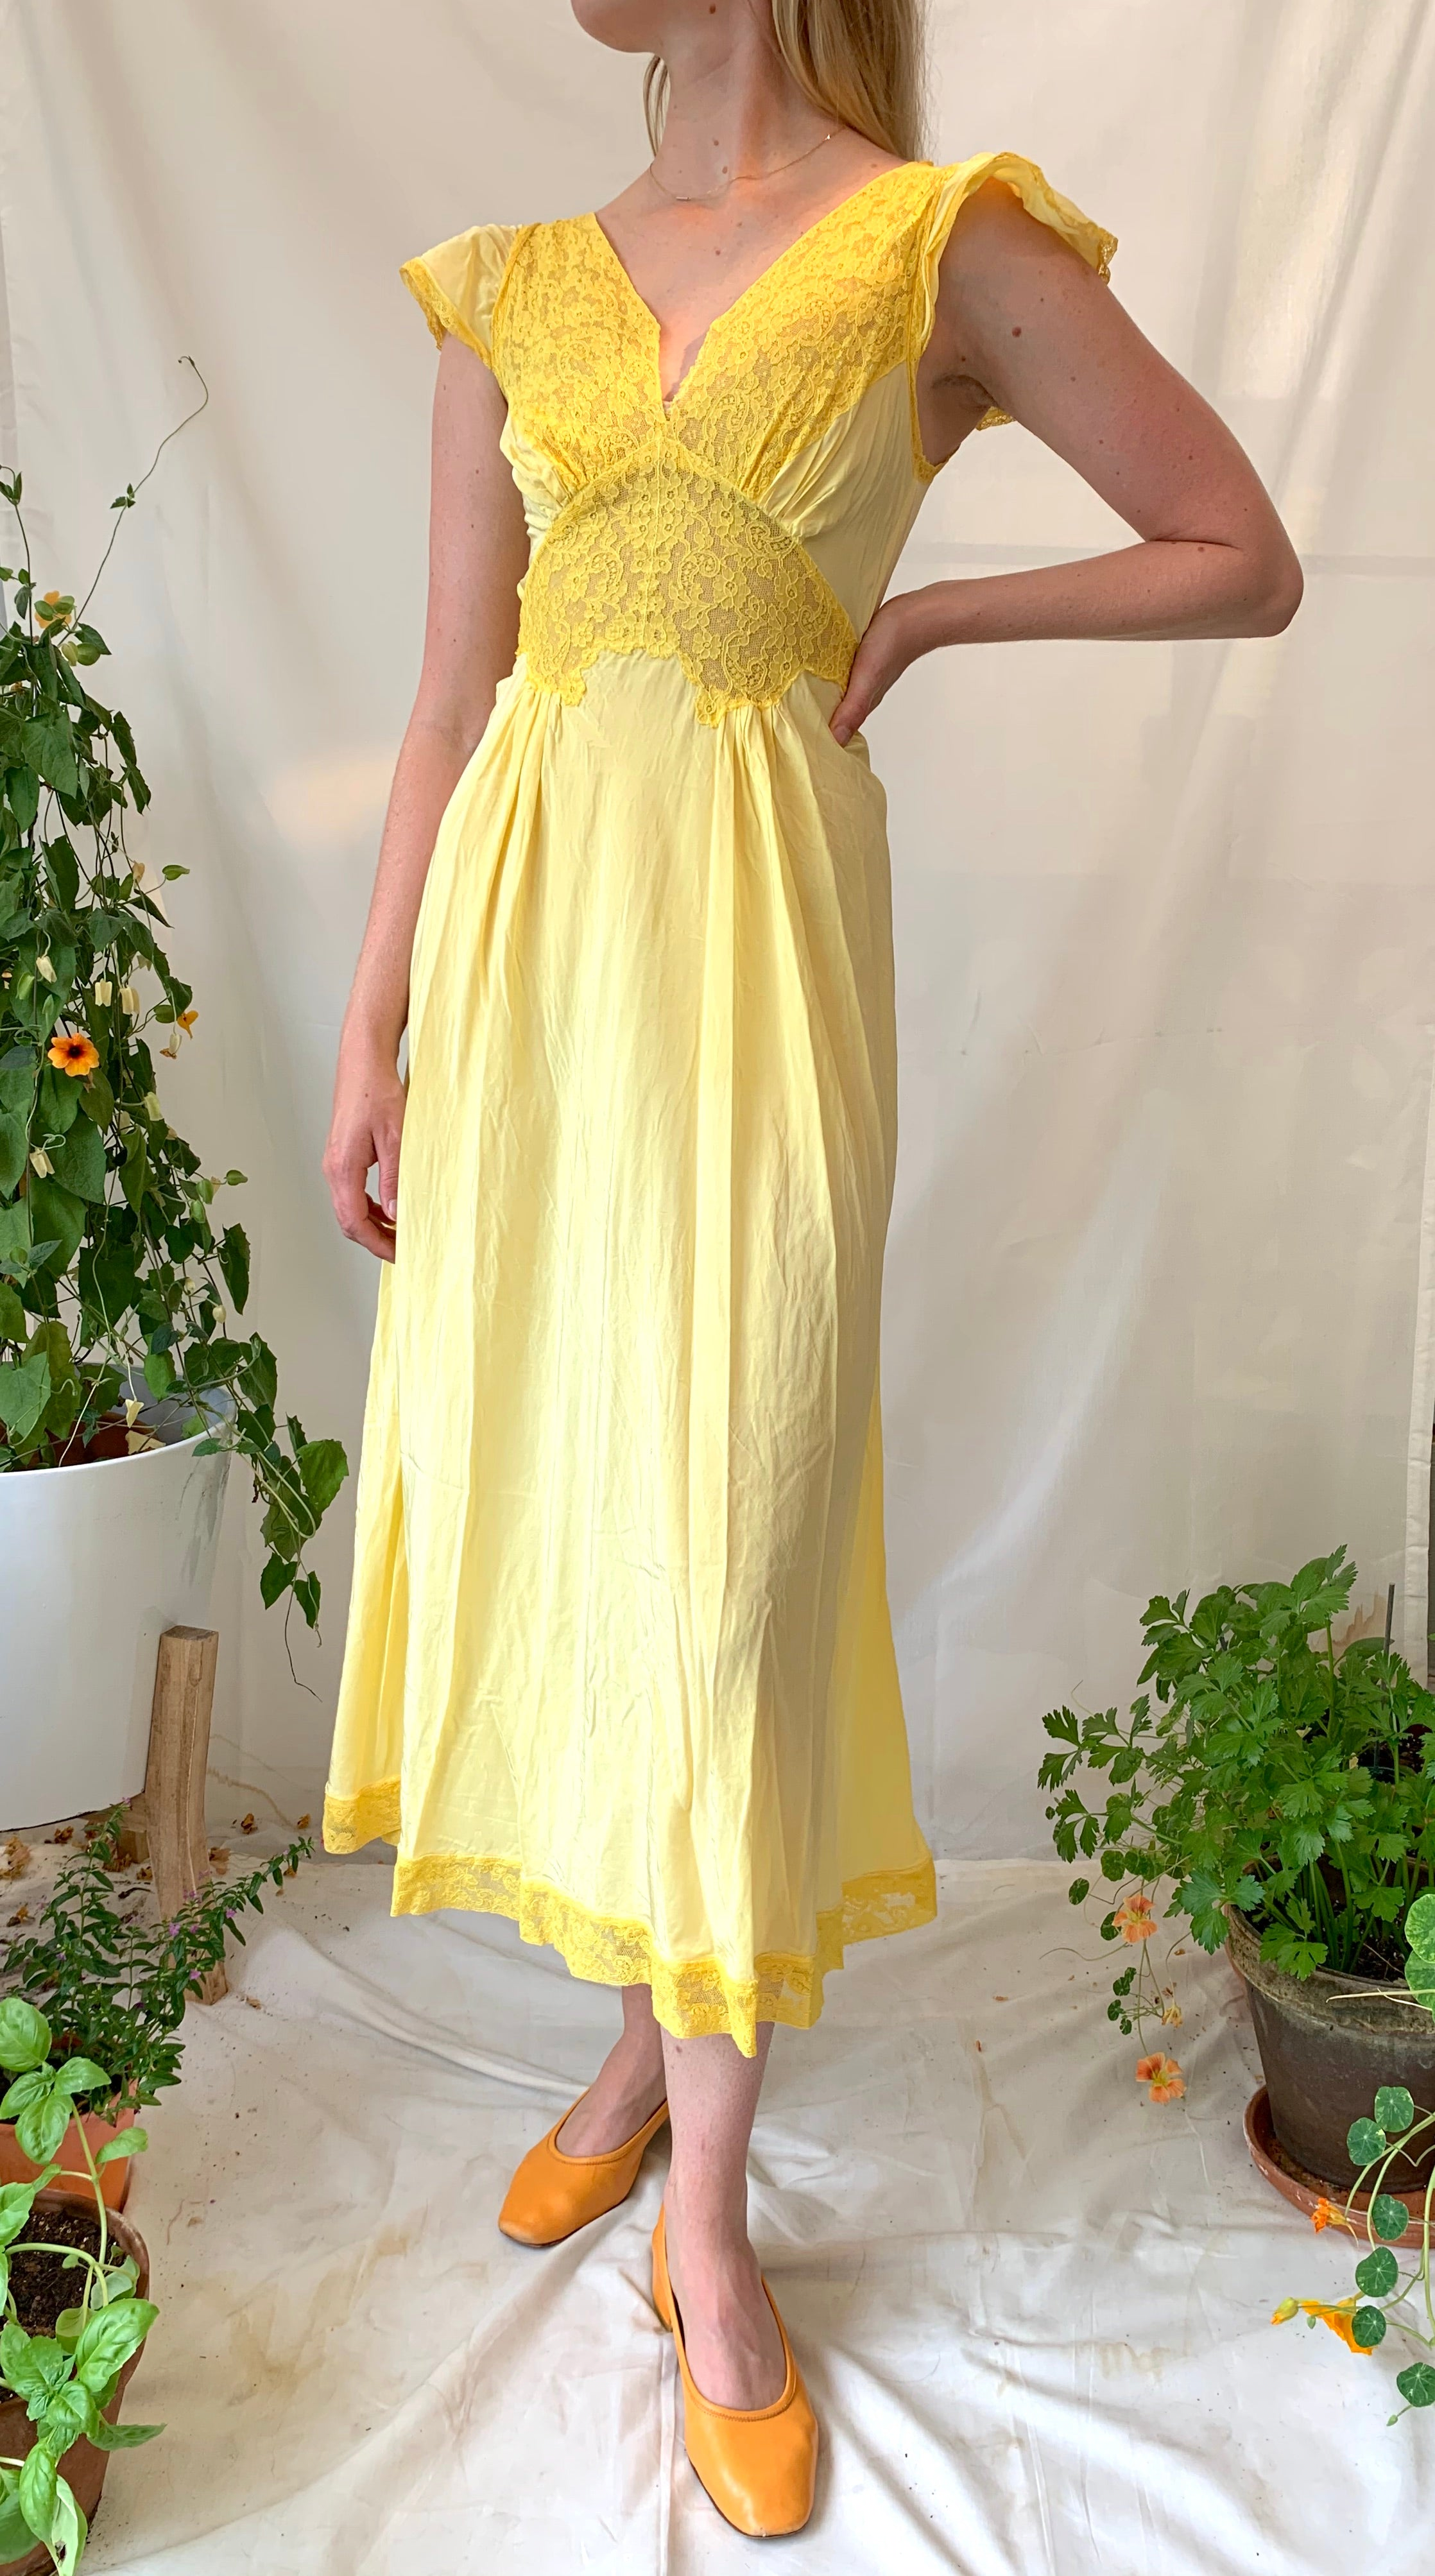 Hand Dyed Sunflower Yellow Slip Dress